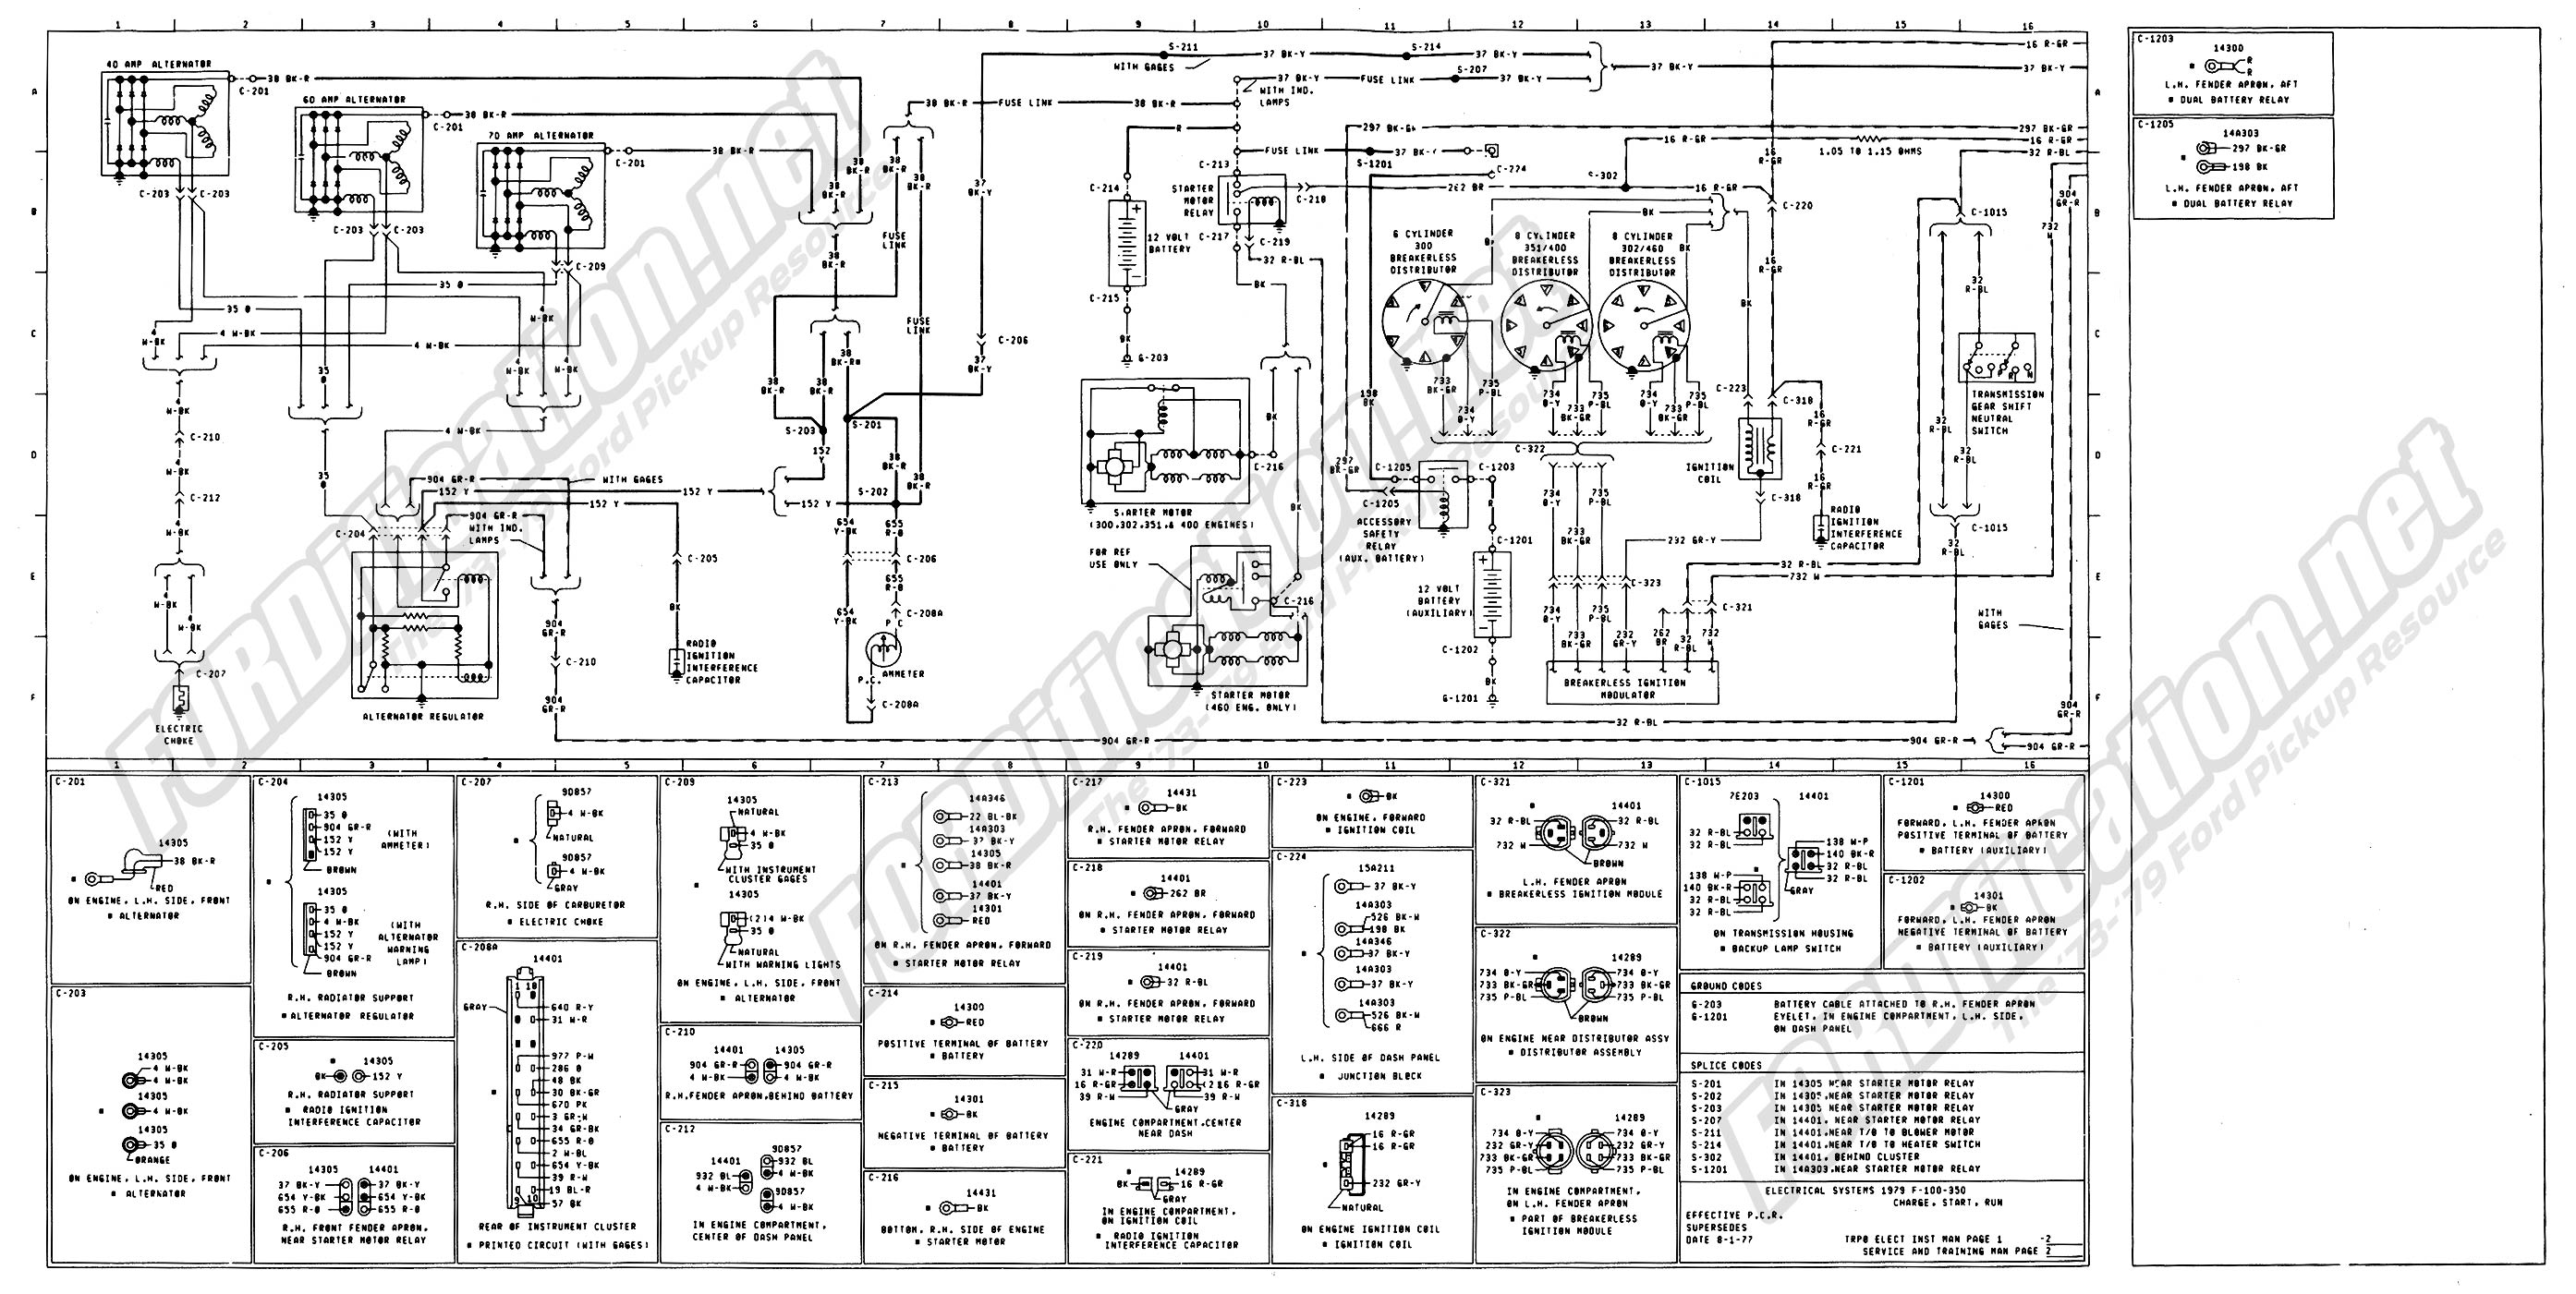 8ds6q Mazda Tribute Looking Charging System Wiring Diagrams also Chevy Lt1 Engine Wire Harness together with 7 3 Powerstroke Fuel Lines furthermore 96 Lt1 Engine Diagram together with Alternator For Bj40 1980. on alternator wiring harness connector